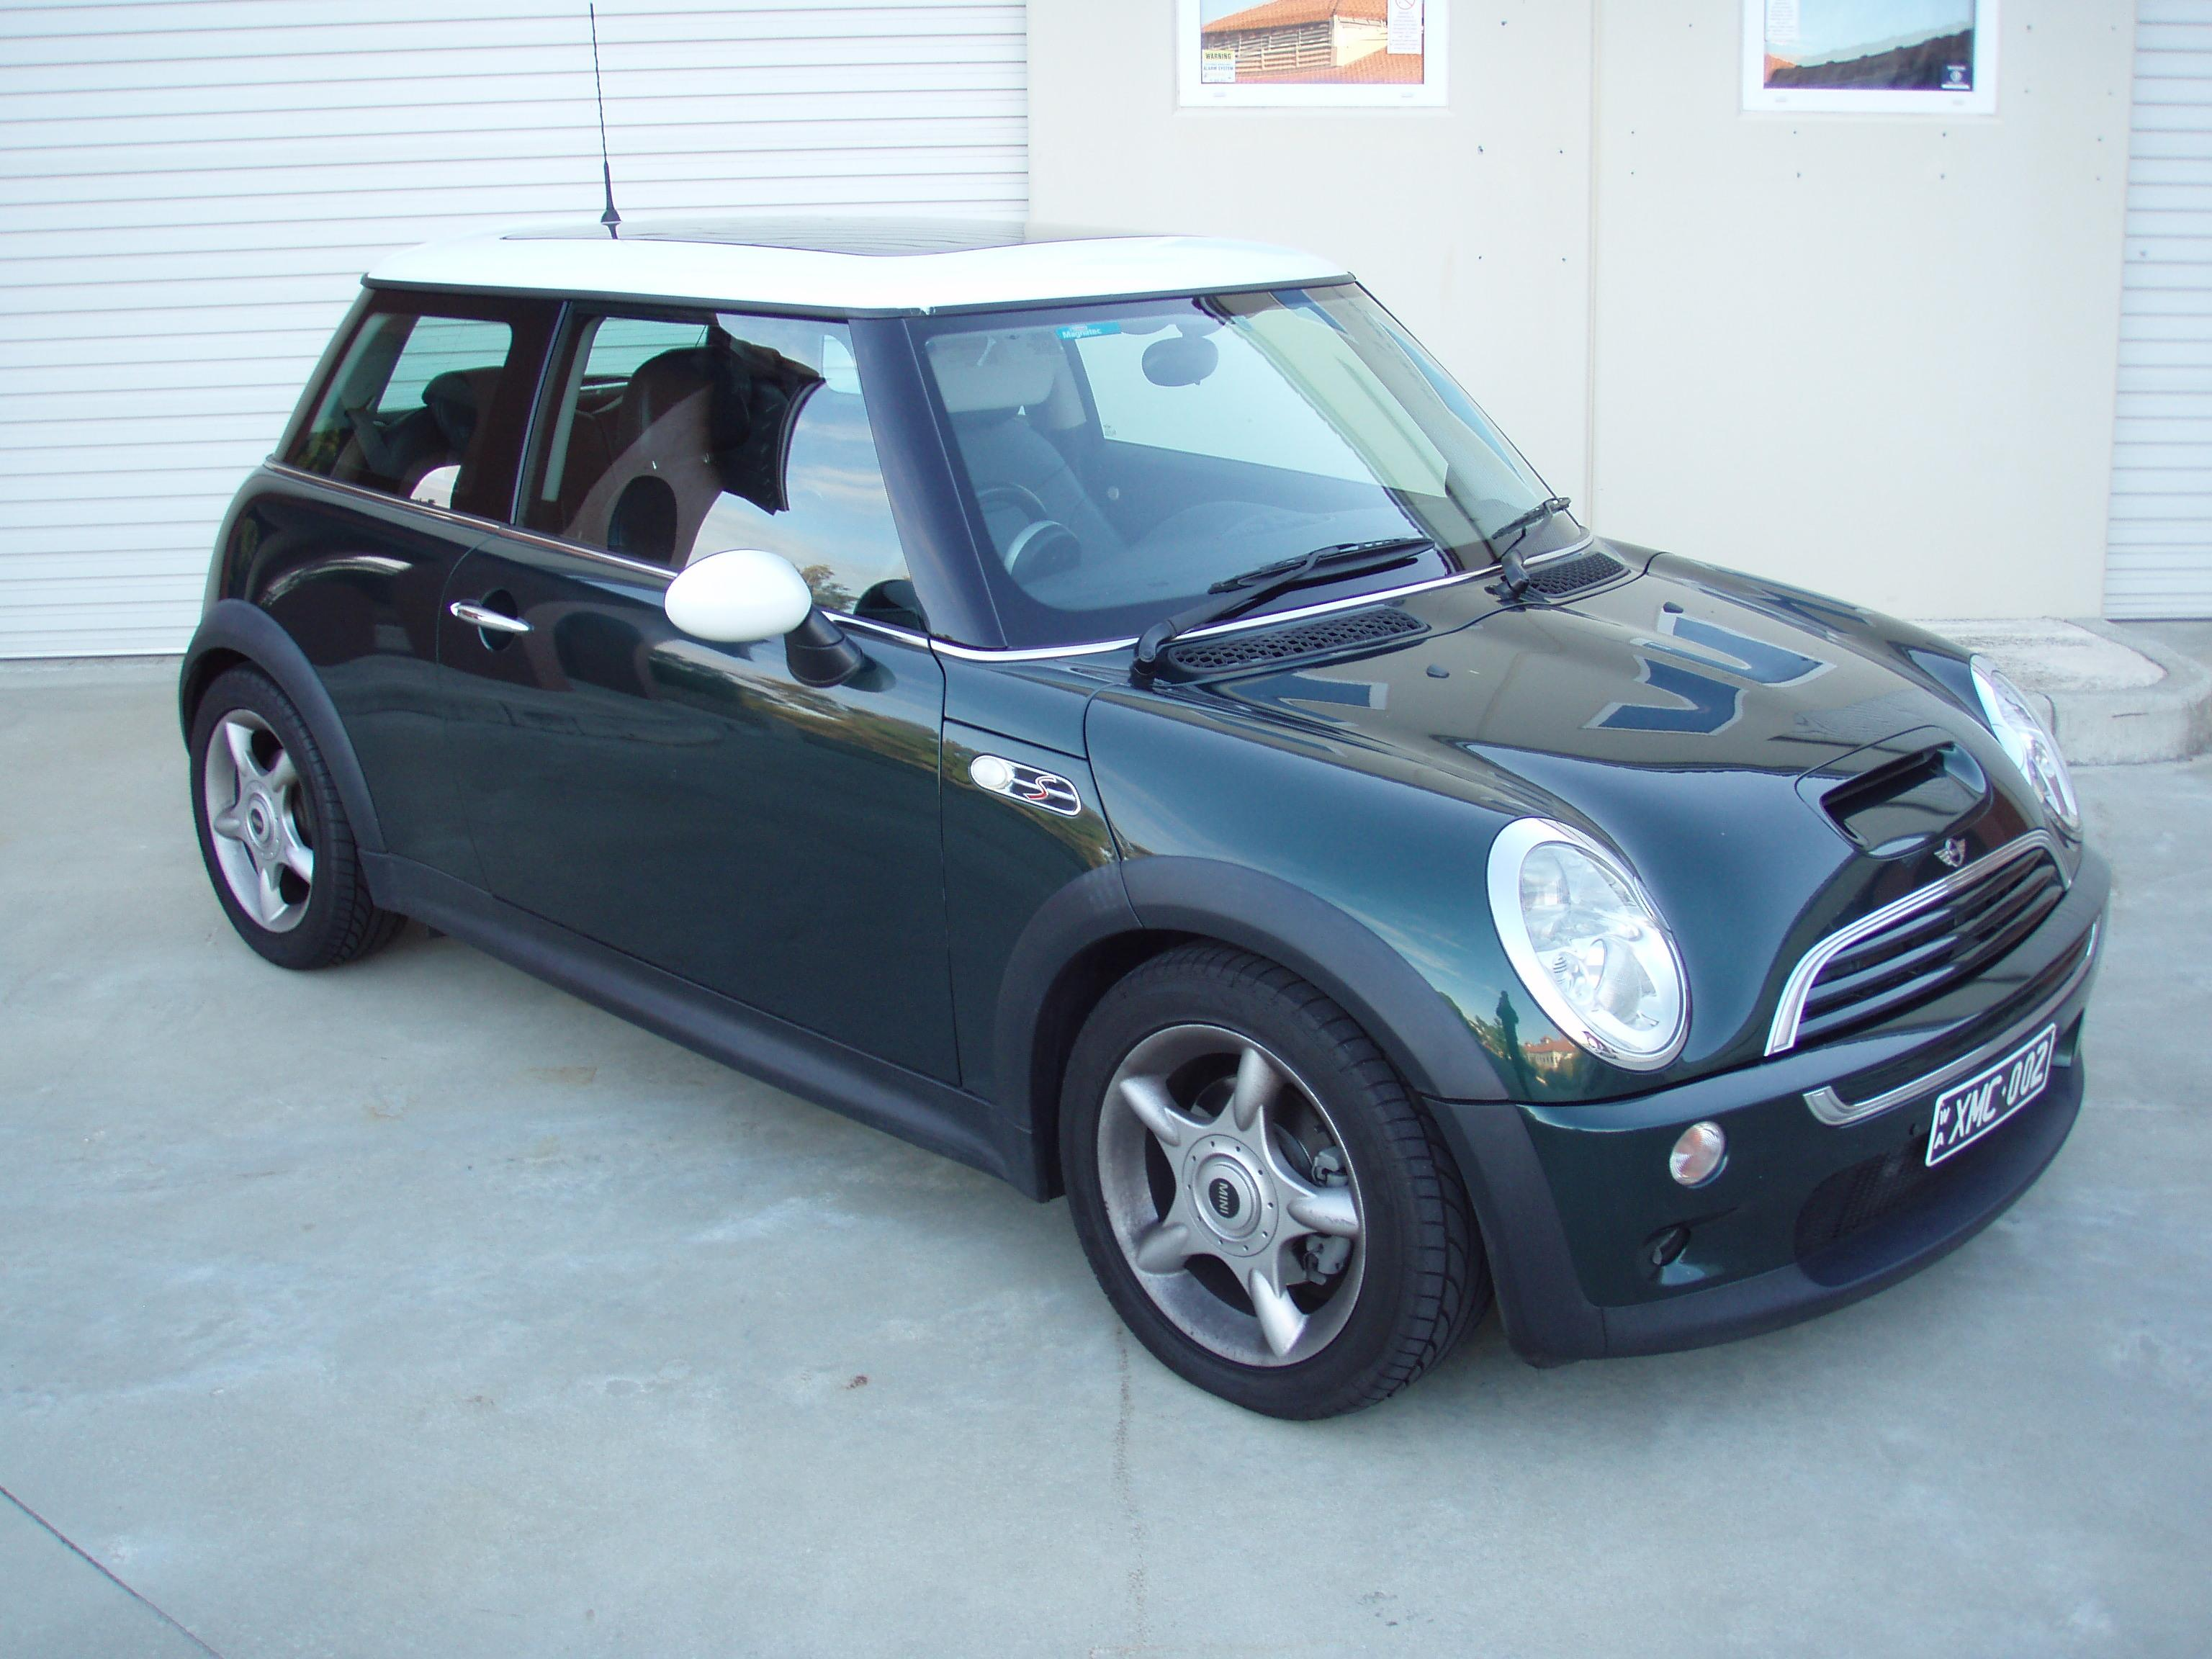 ali g 2002 mini coopers hatchback 2d specs, photos, modification